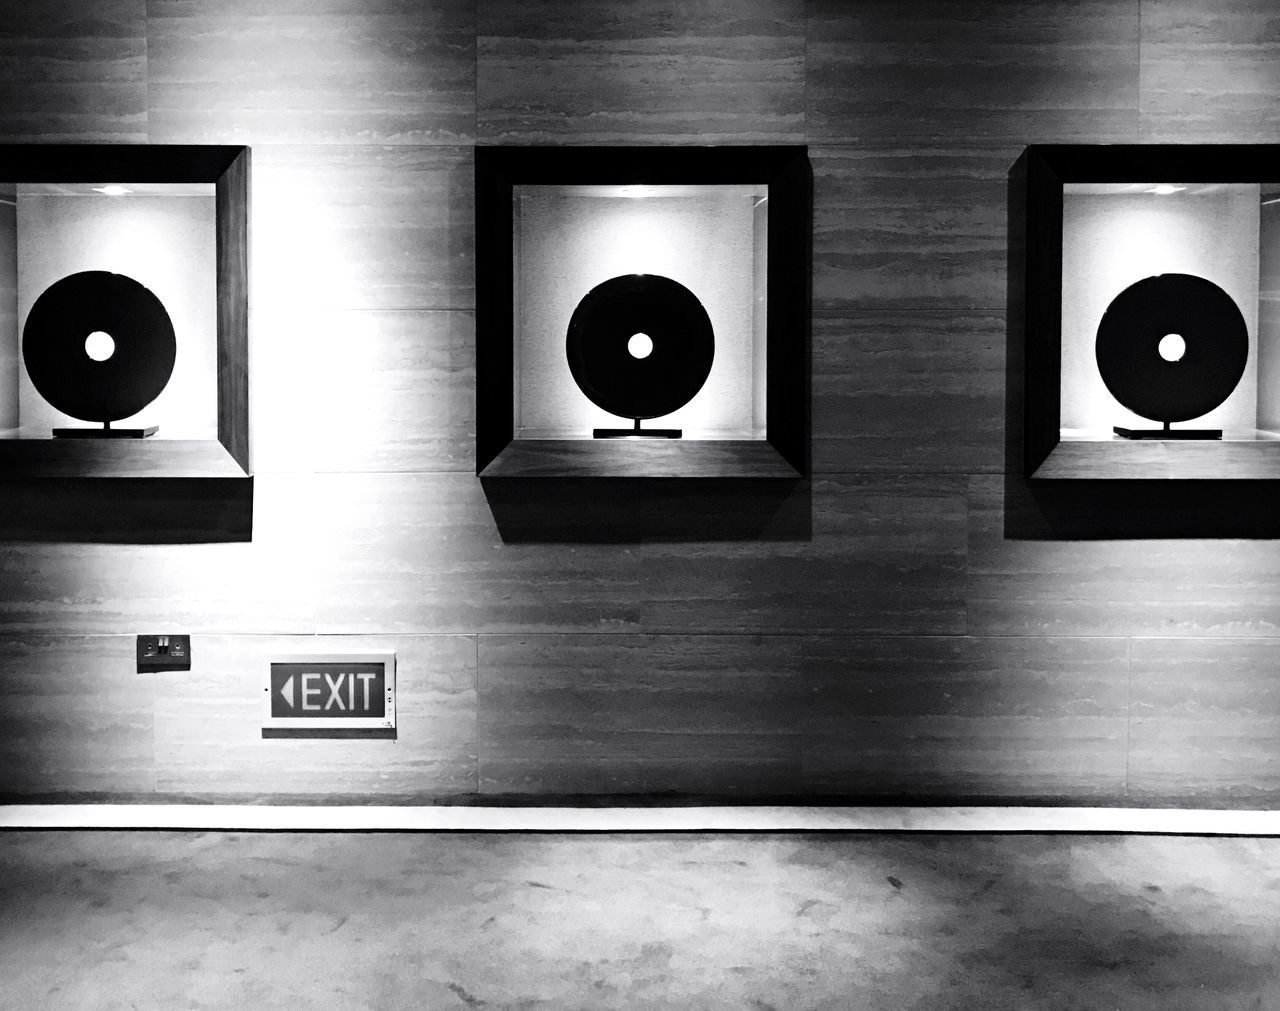 Wall installation. Indoors  EyeEm Gallery OpenEdit Open Edit EyeEm Best Shots Check This Out Taking Photos Light Light And Shadow Interior Design Art Wall Blackandwhite Photography Black And White Photography Blackandwhite Black And White Black & White Black&white First Eyeem Photo